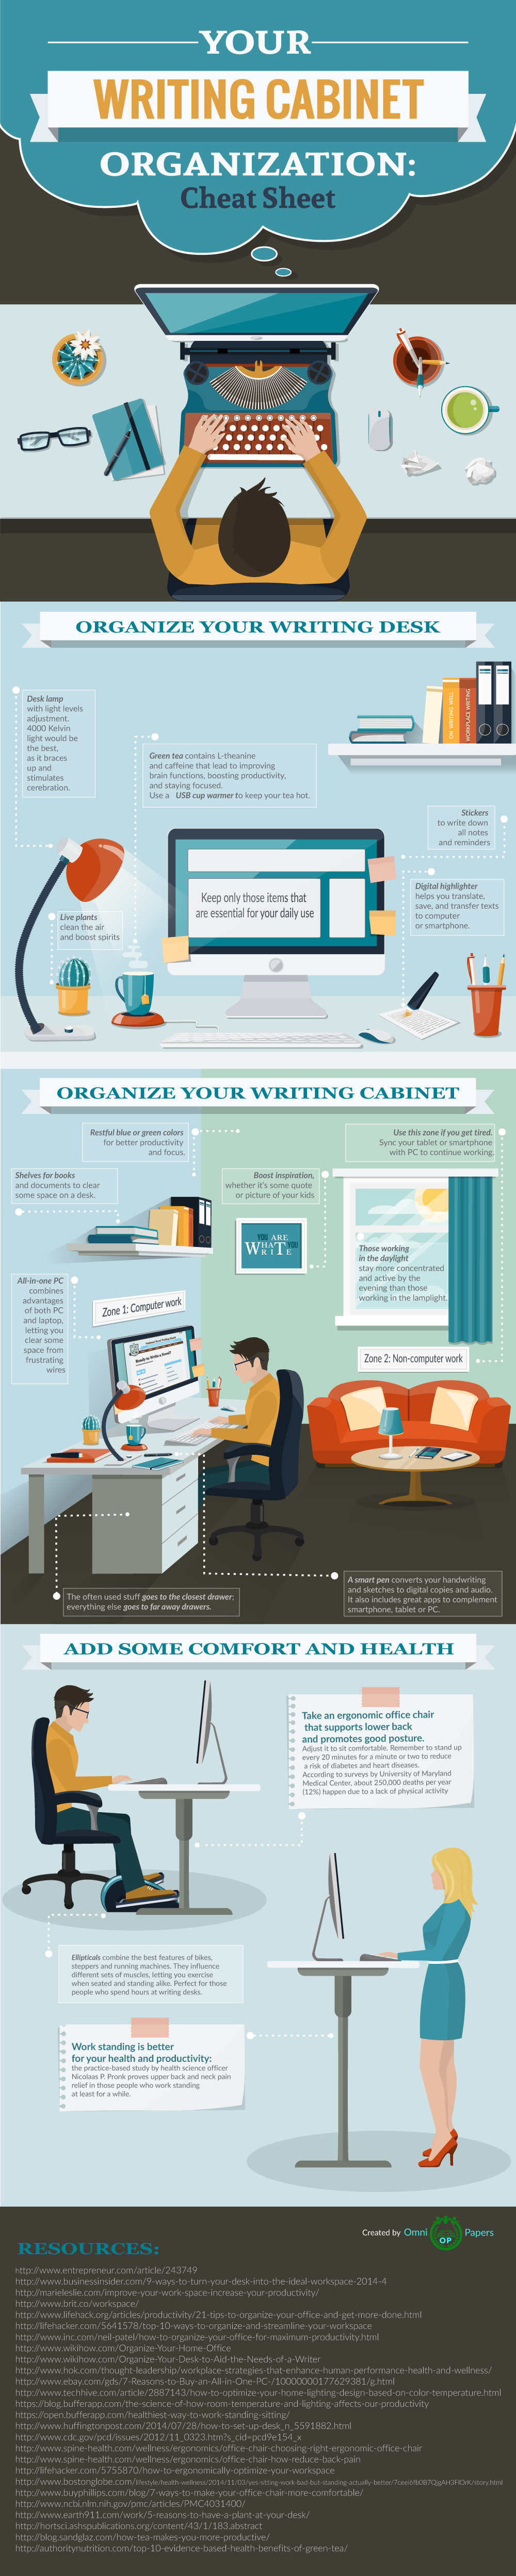 writing time lisawroble your writing cabinet organization